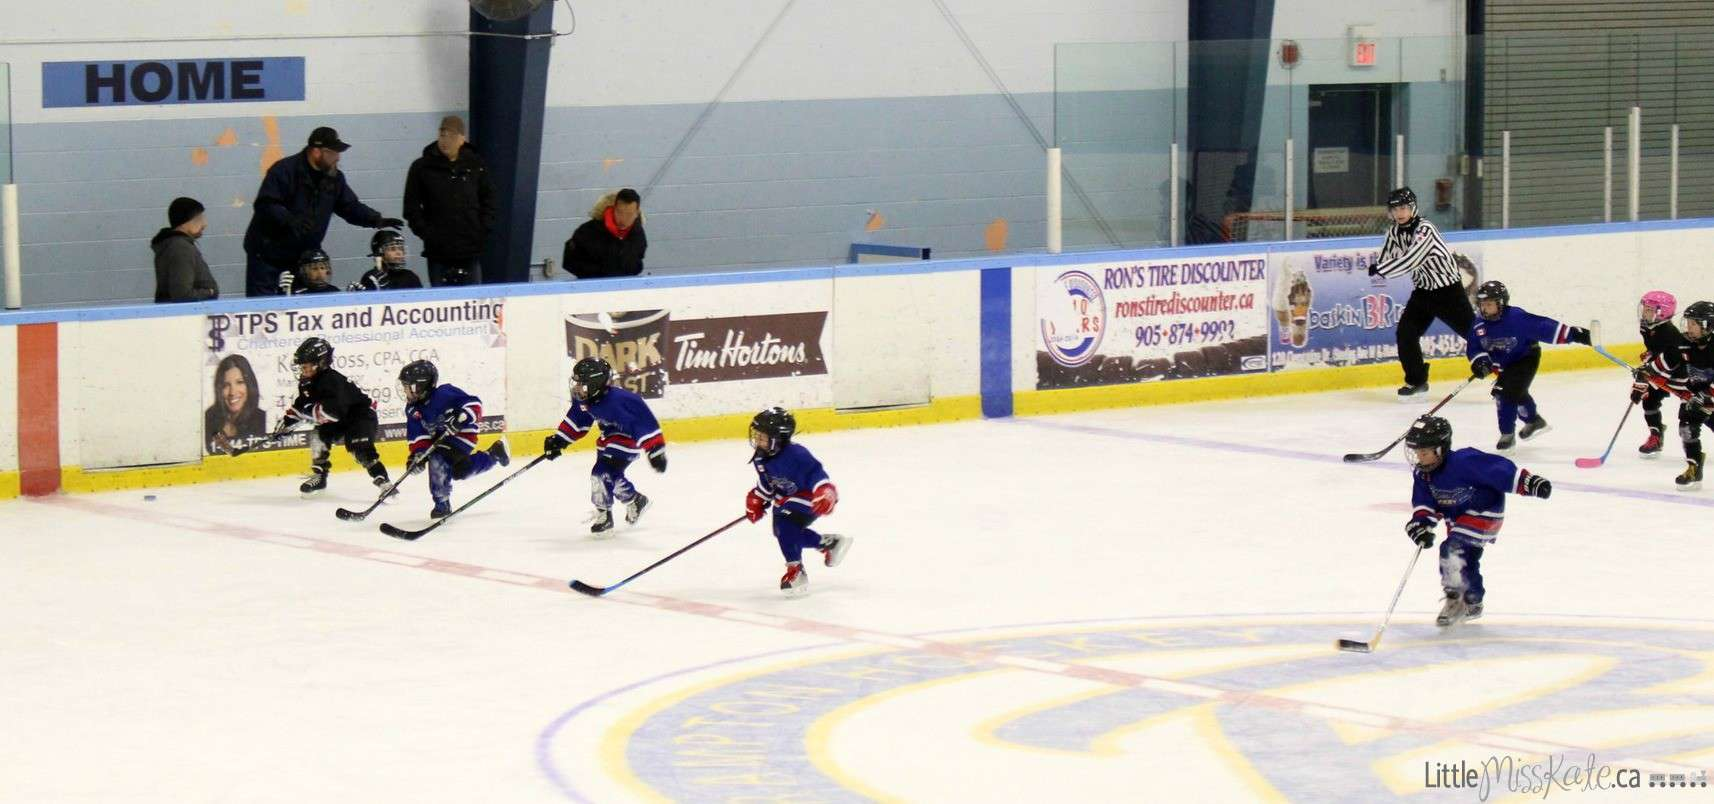 Benefits of hockey Sports - build confidence